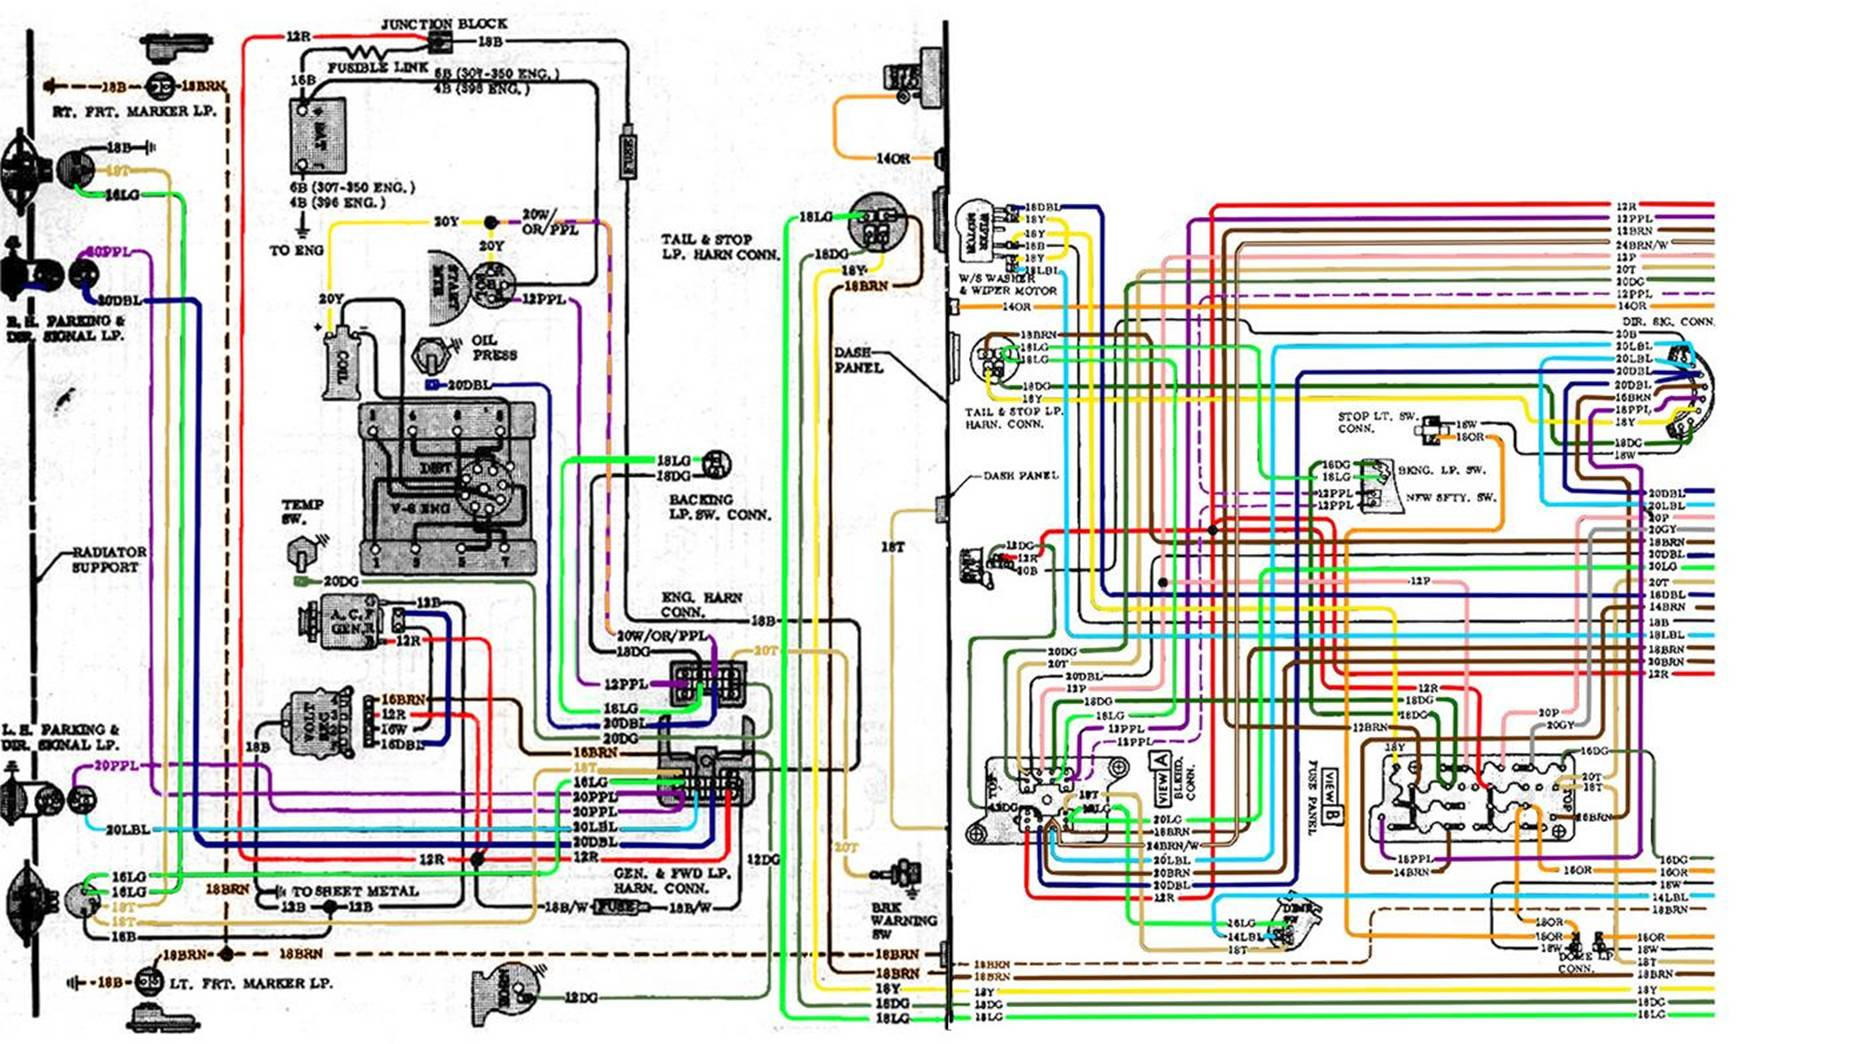 hight resolution of 1967 chevy c10 fuse box data schematics wiring diagram u2022 rh xrkarting com 1985 chevy fuse